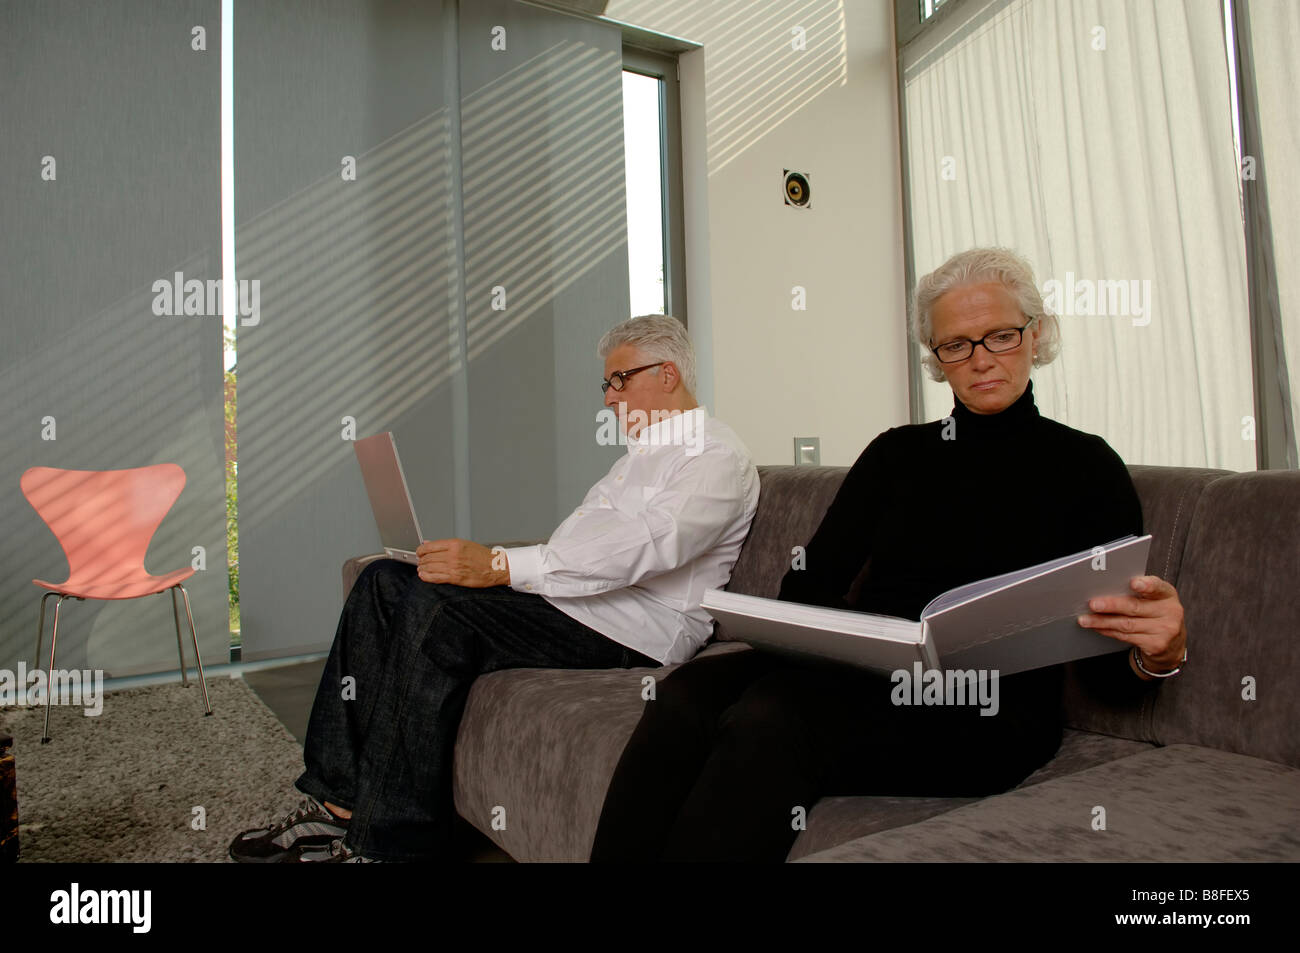 Senior man with a laptop next to a senior woman with a book, both sitting on a settee - Stock Image